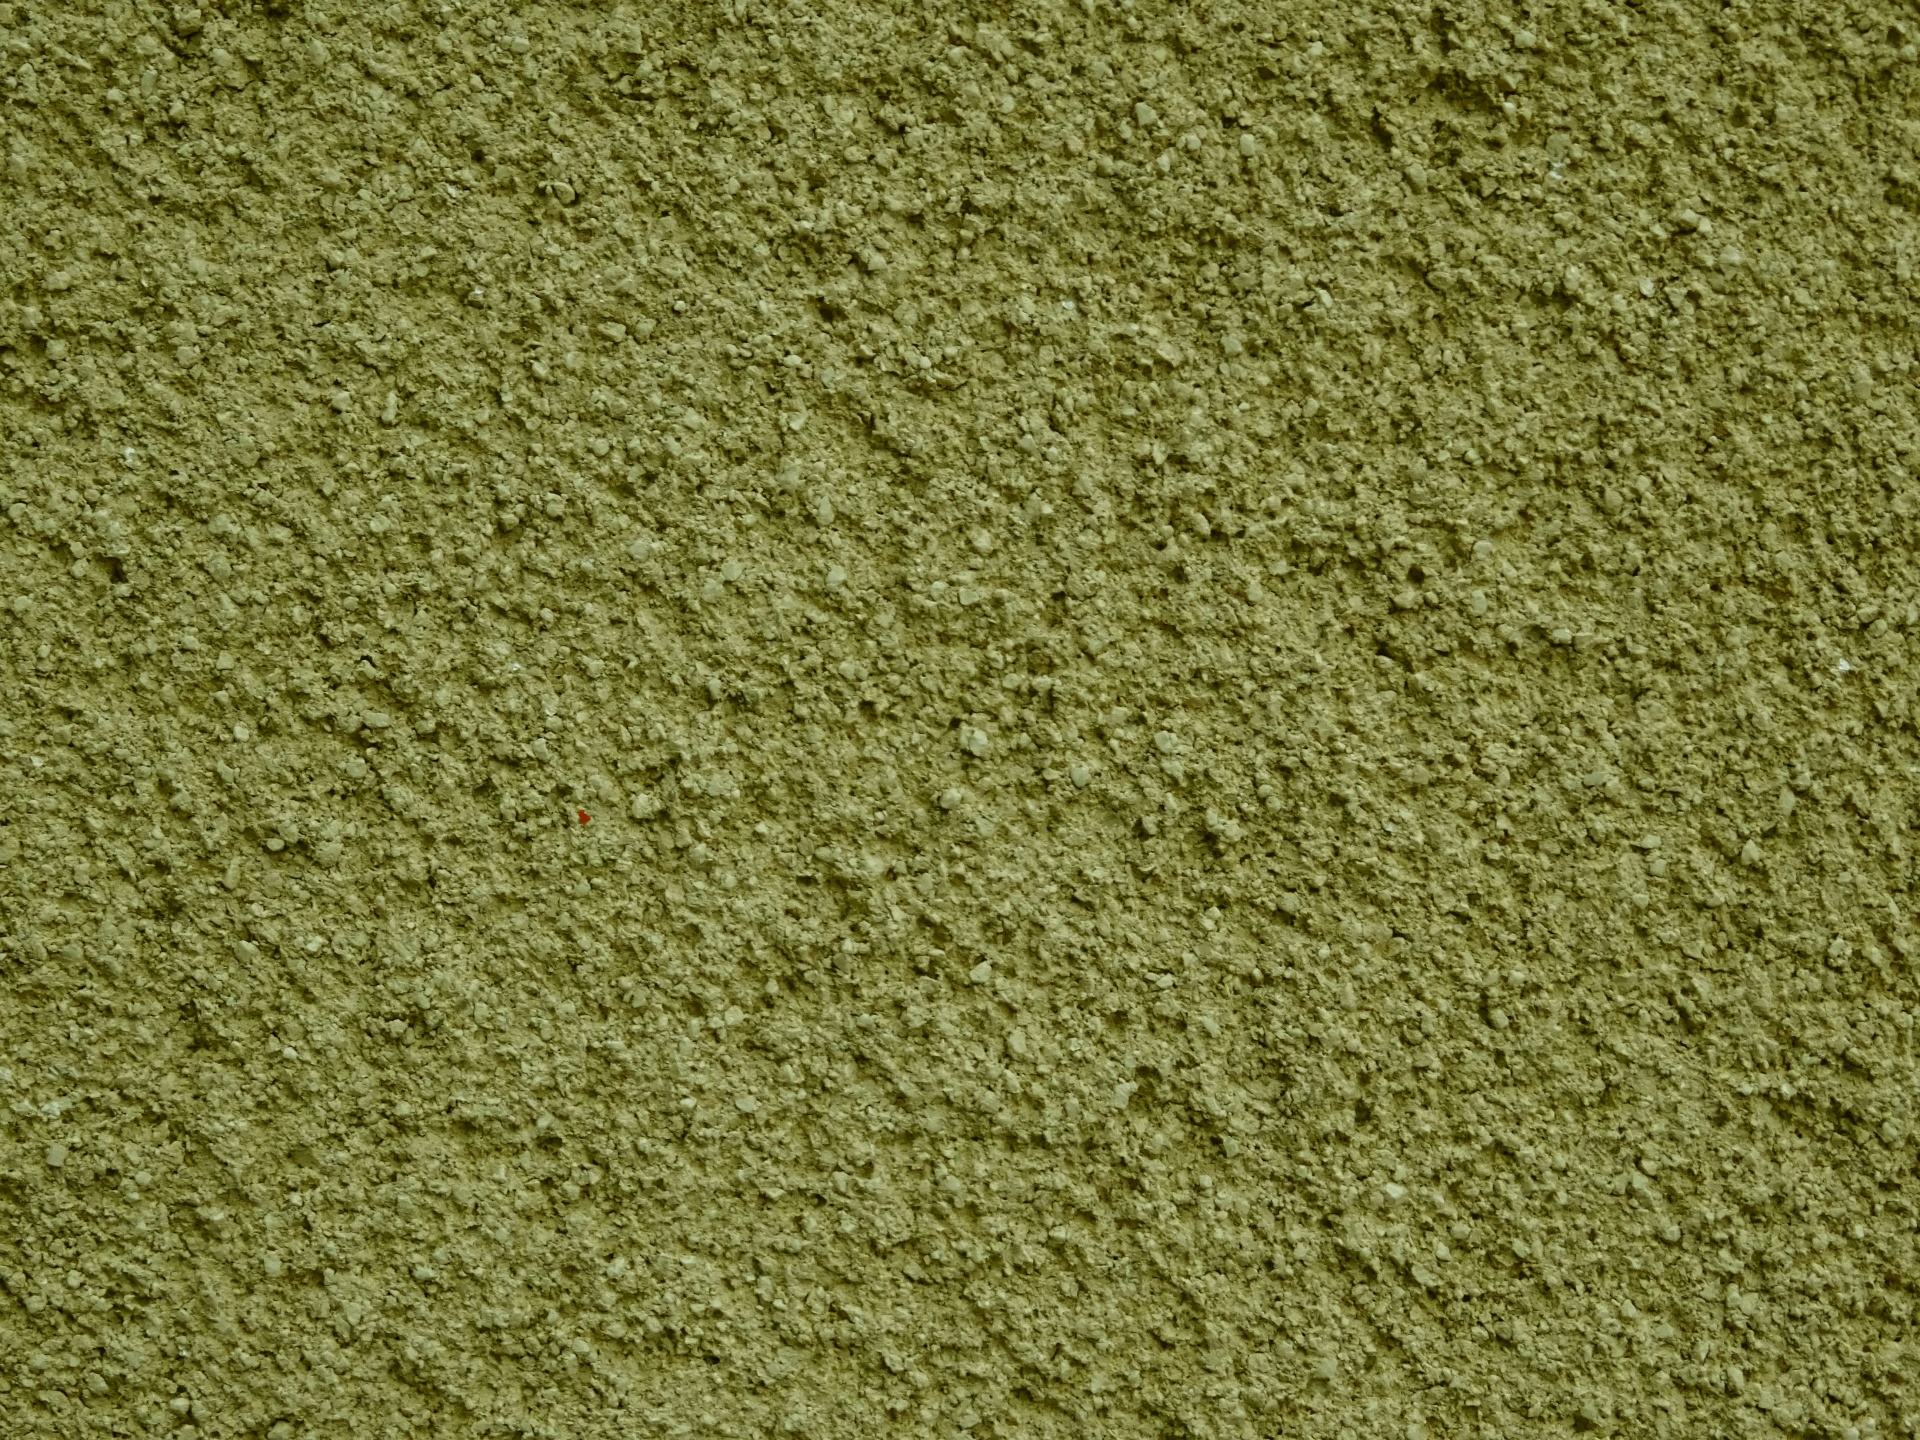 Download Olive Green Textured Wallpaper Gallery